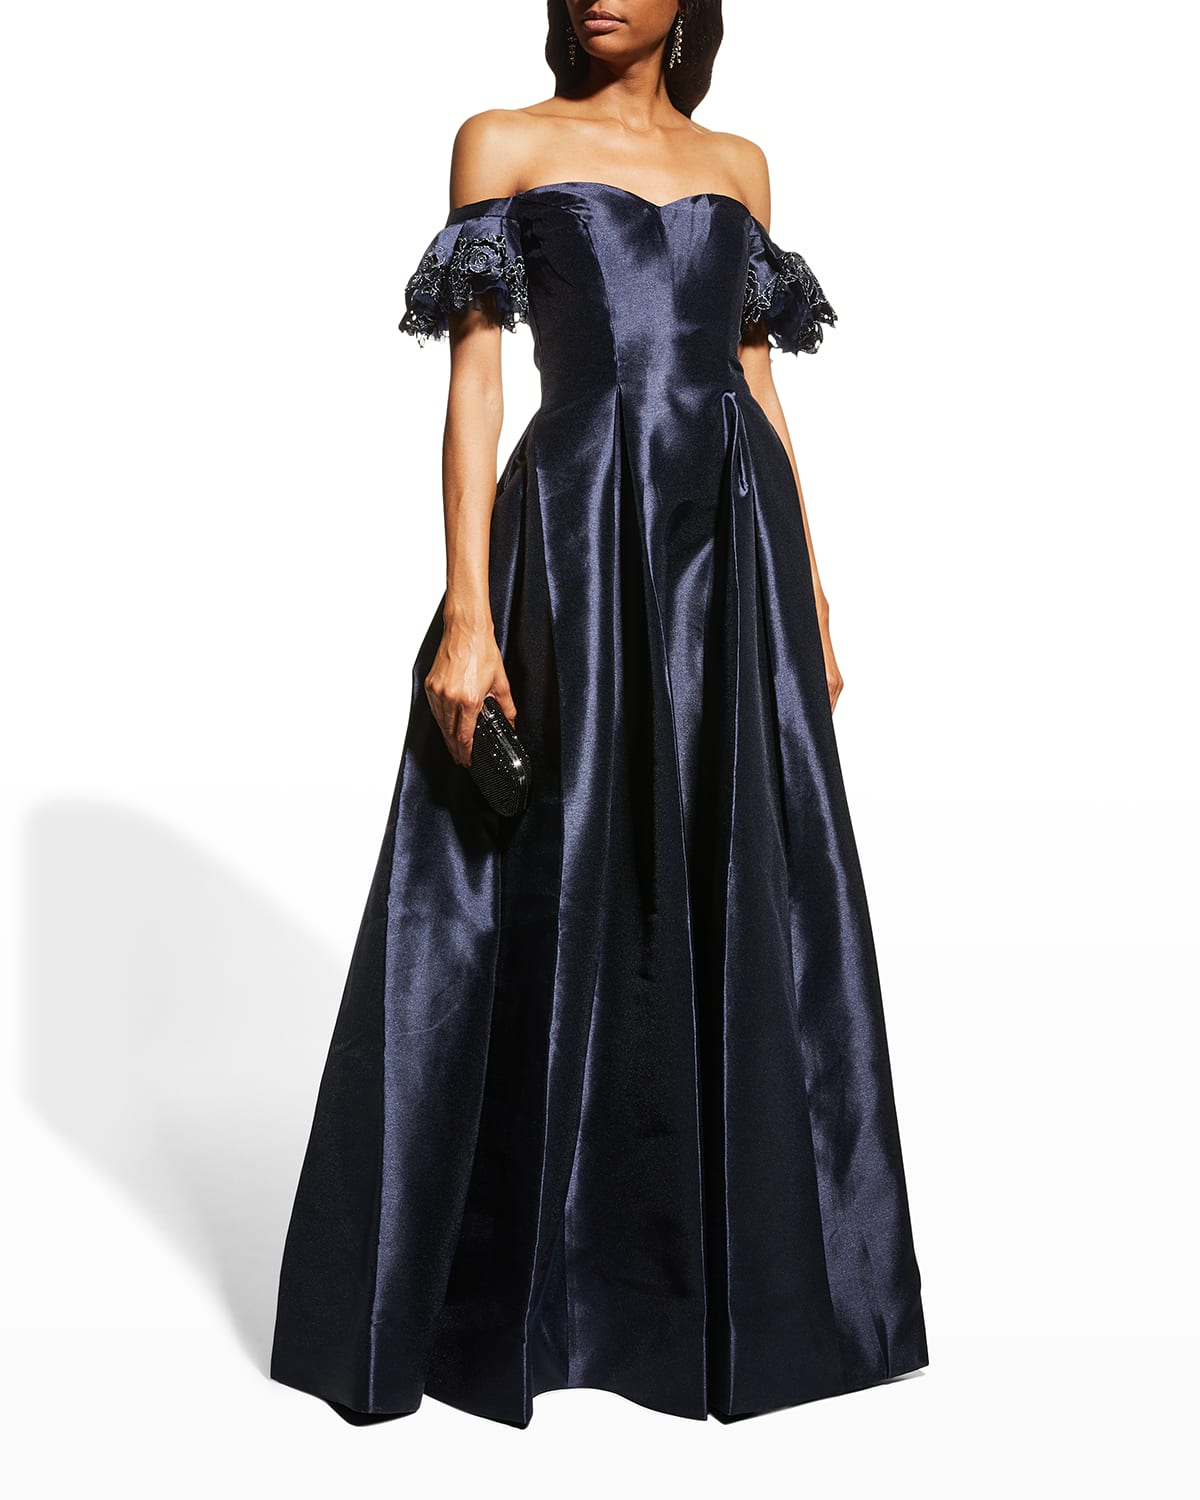 Off-Shoulder Sweetheart Gown